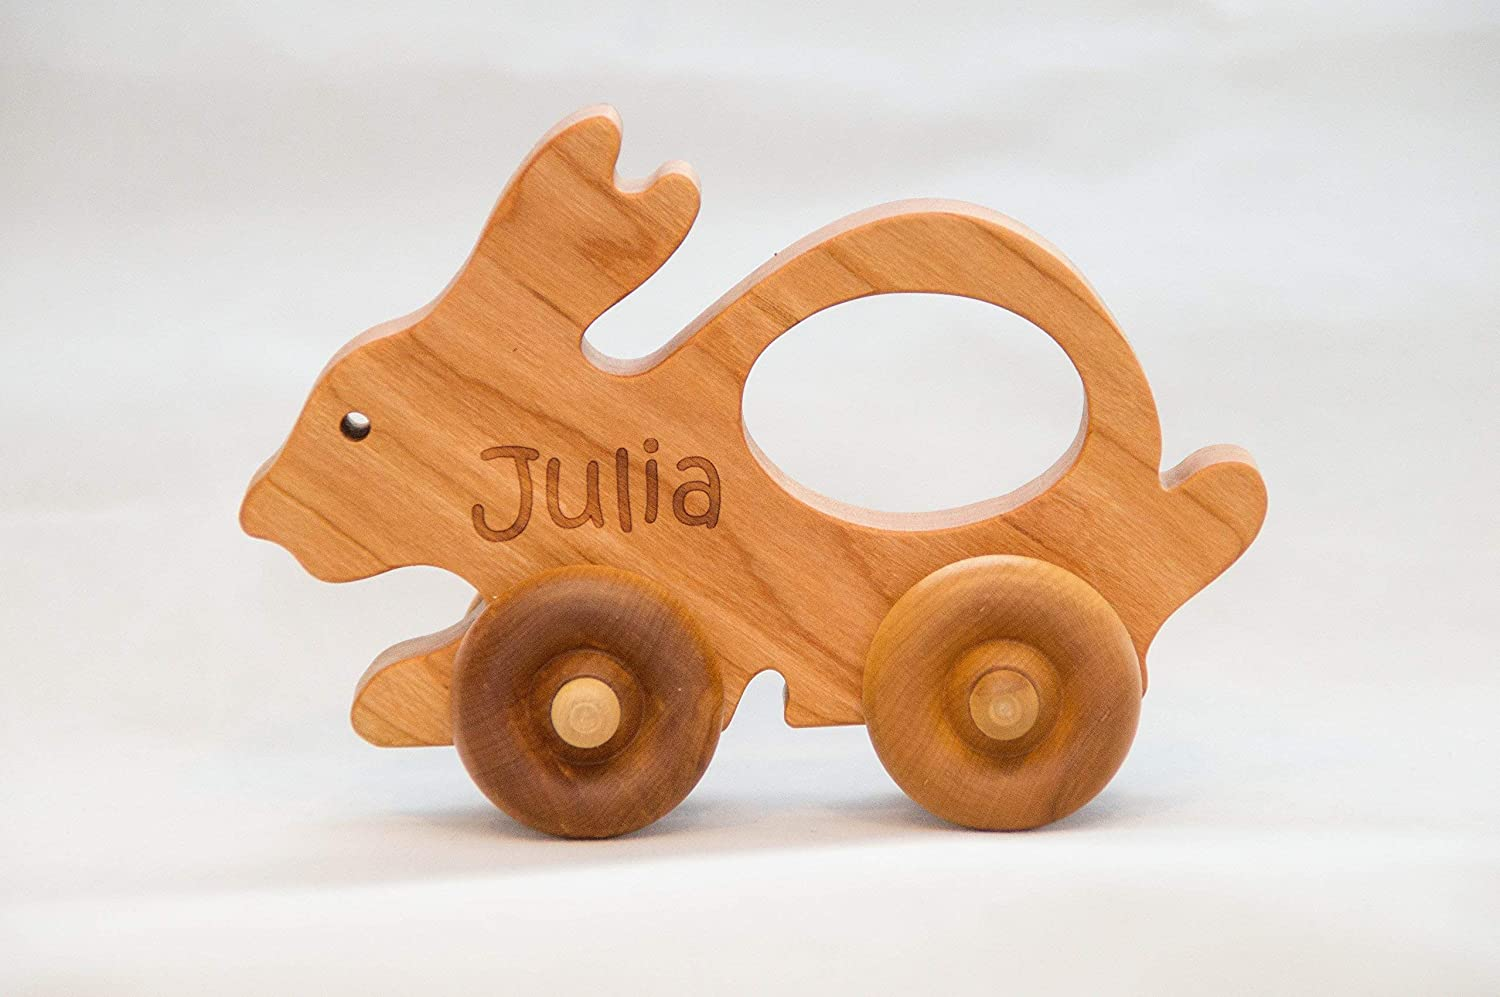 Wood Toy Car - Personalized Push Toy in the shape of a cute bunny - Waldorf and Montessori Inspired Animal Toy Car A